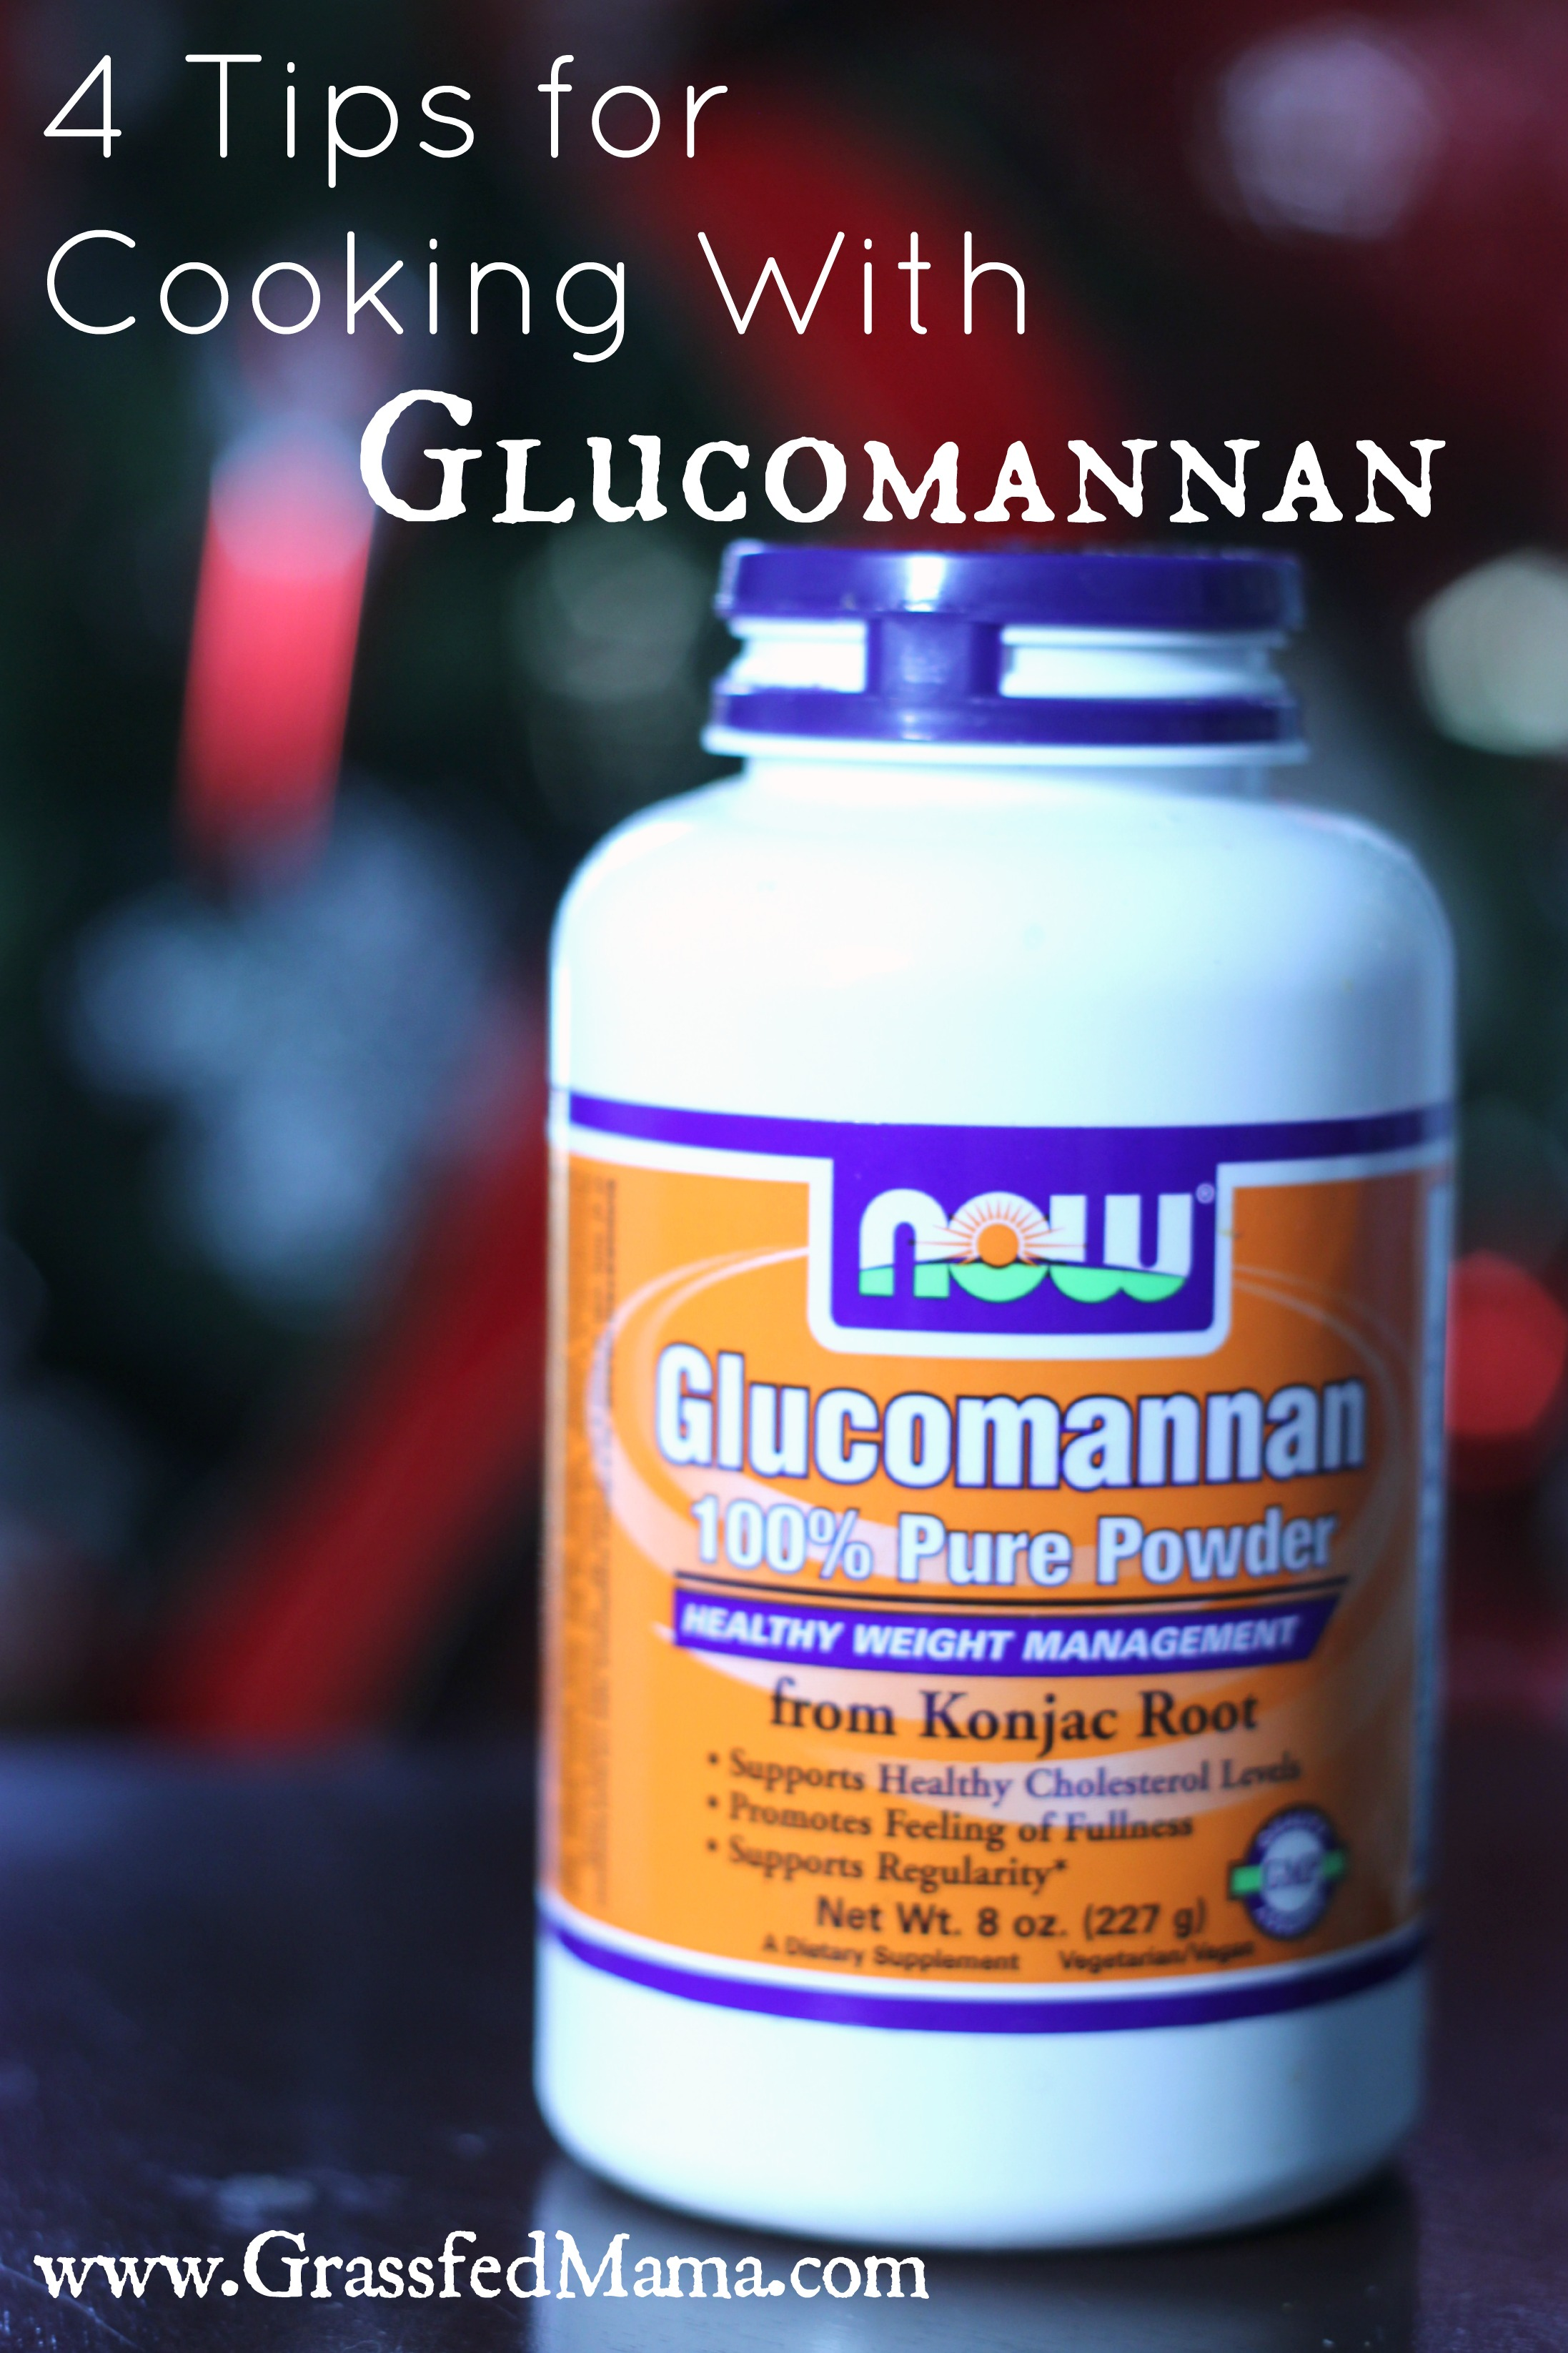 4 Tips for Cooking With Glucomannan